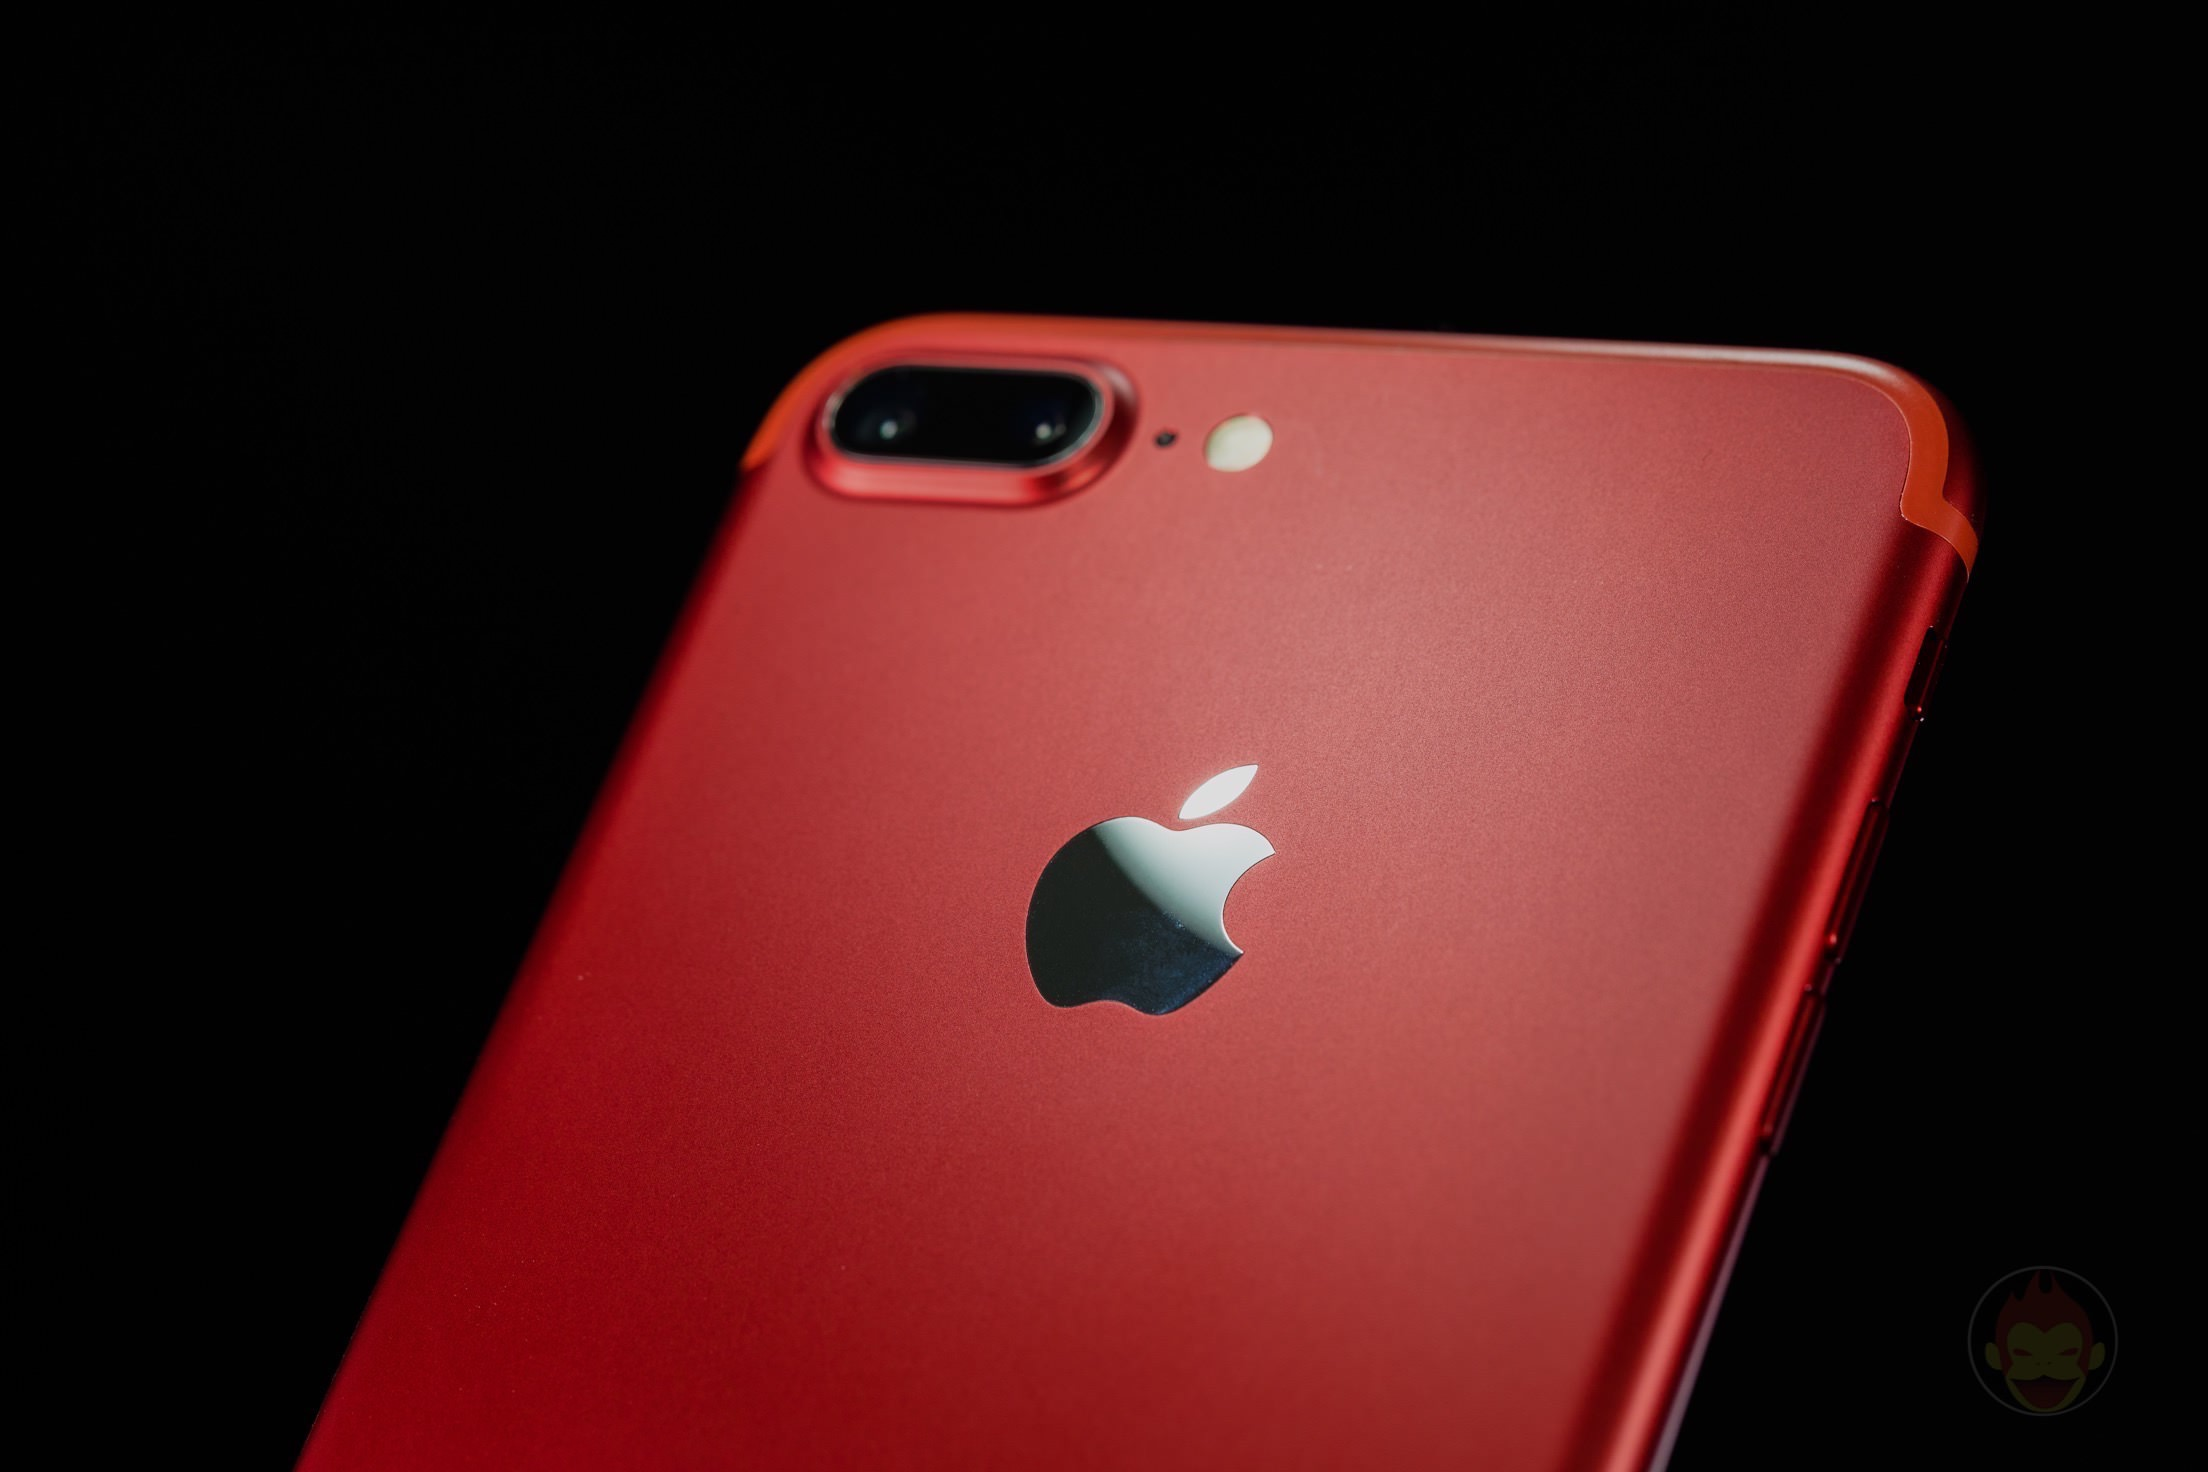 iPhone-7-Product-Red-Special-Edition-03.jpg